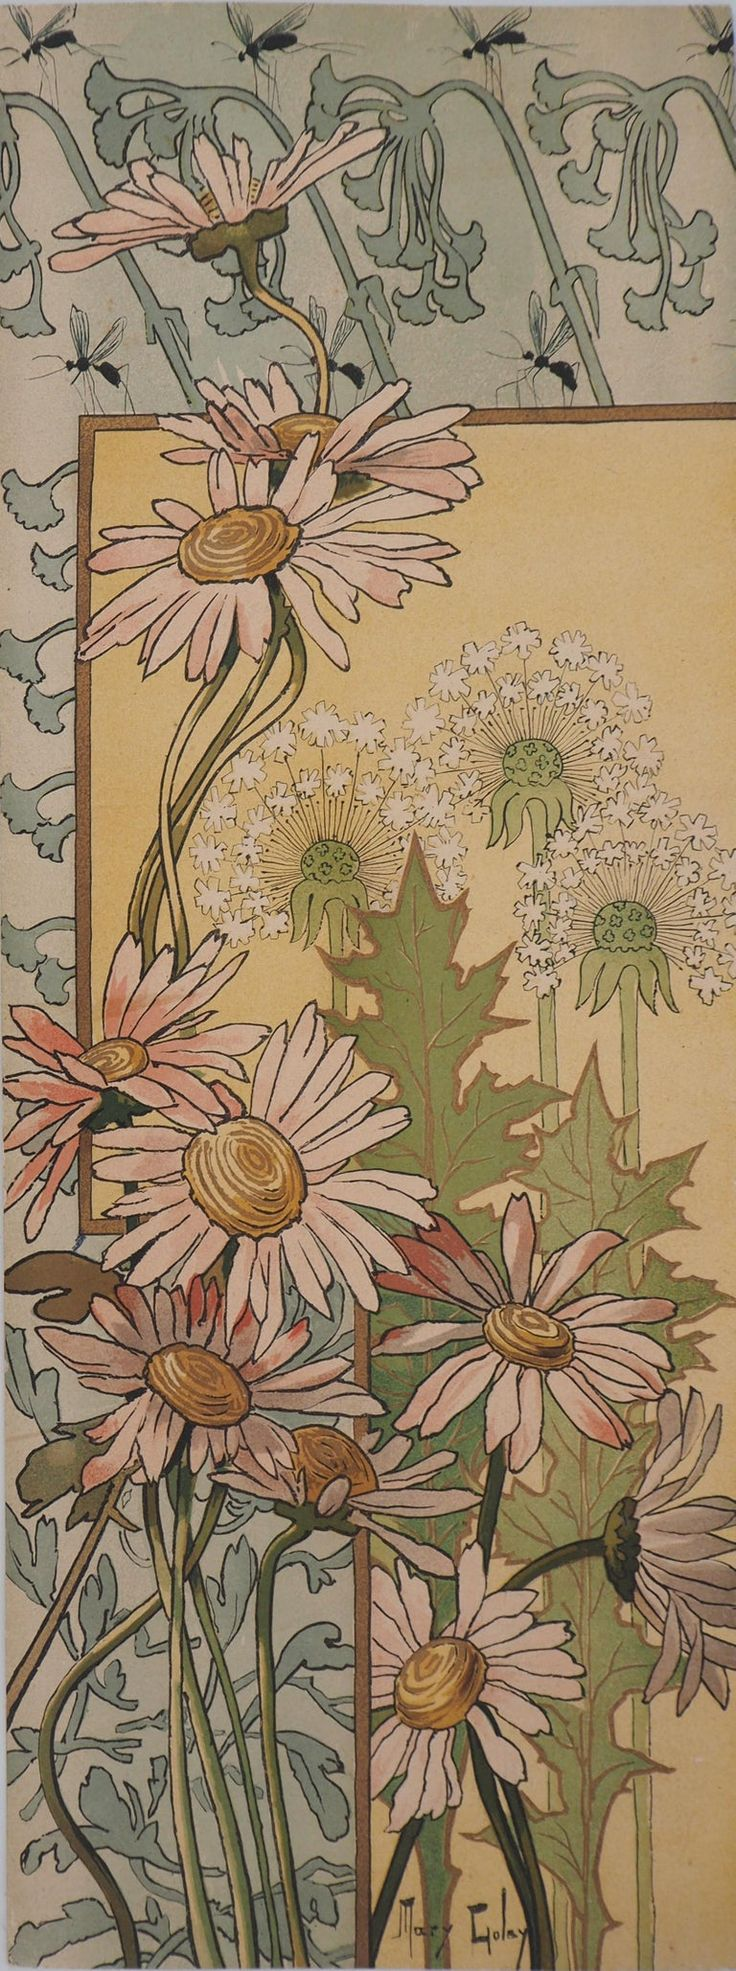 Art Nouveau : Daisies, Thistles And Umbels